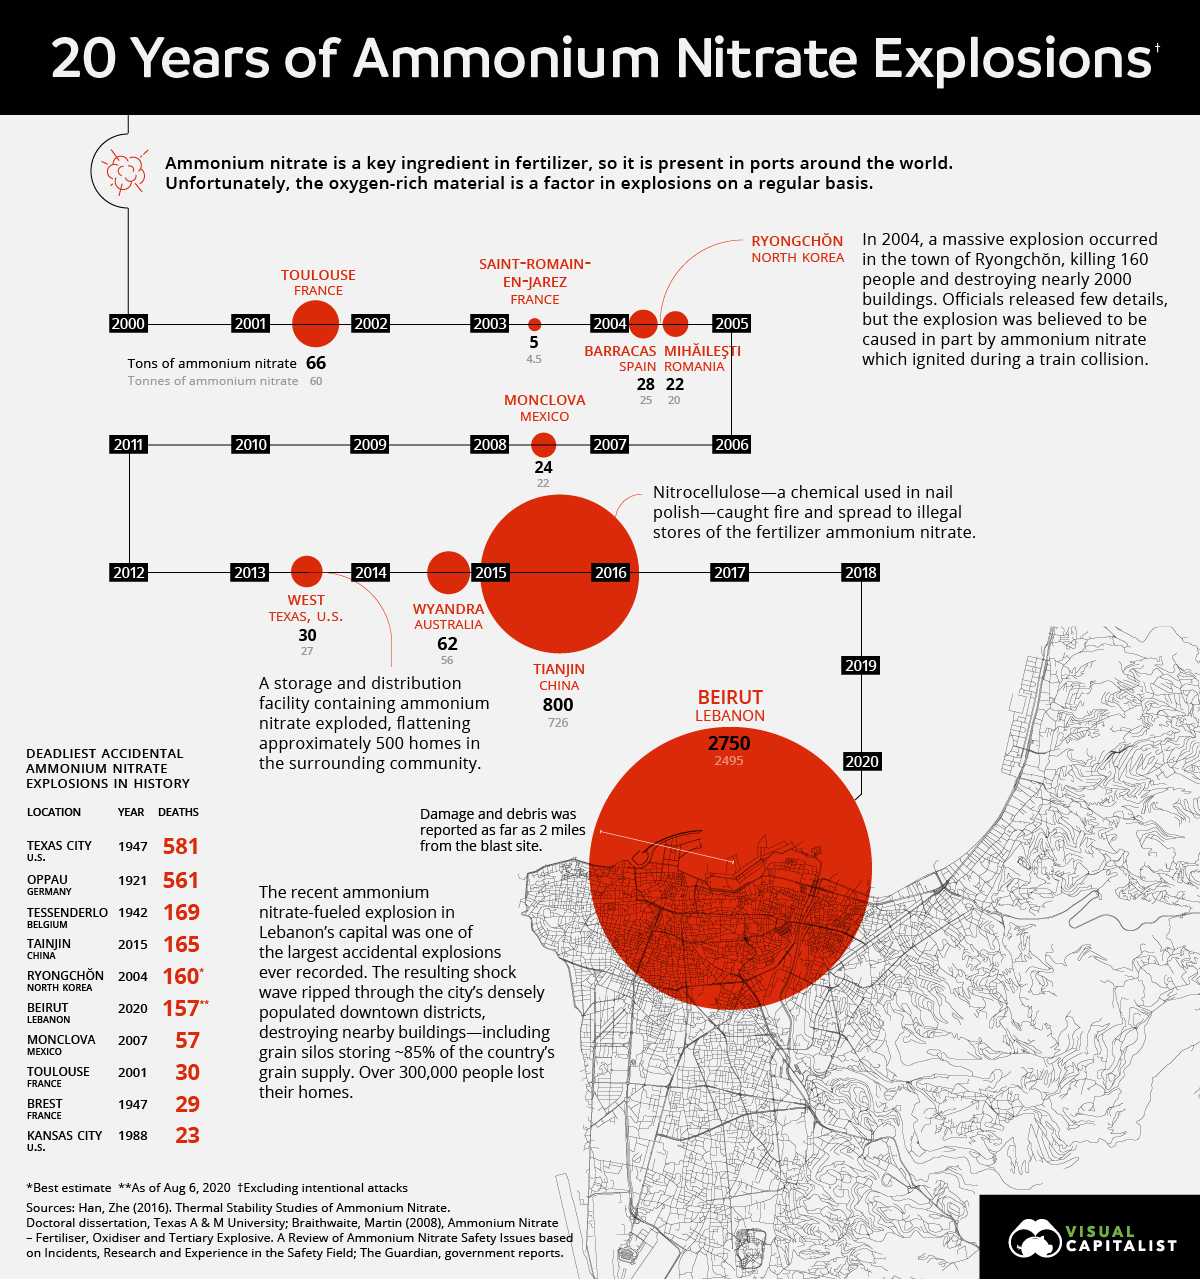 The Biggest Ammonium Nitrate Explosions Since 2000 #Infographic